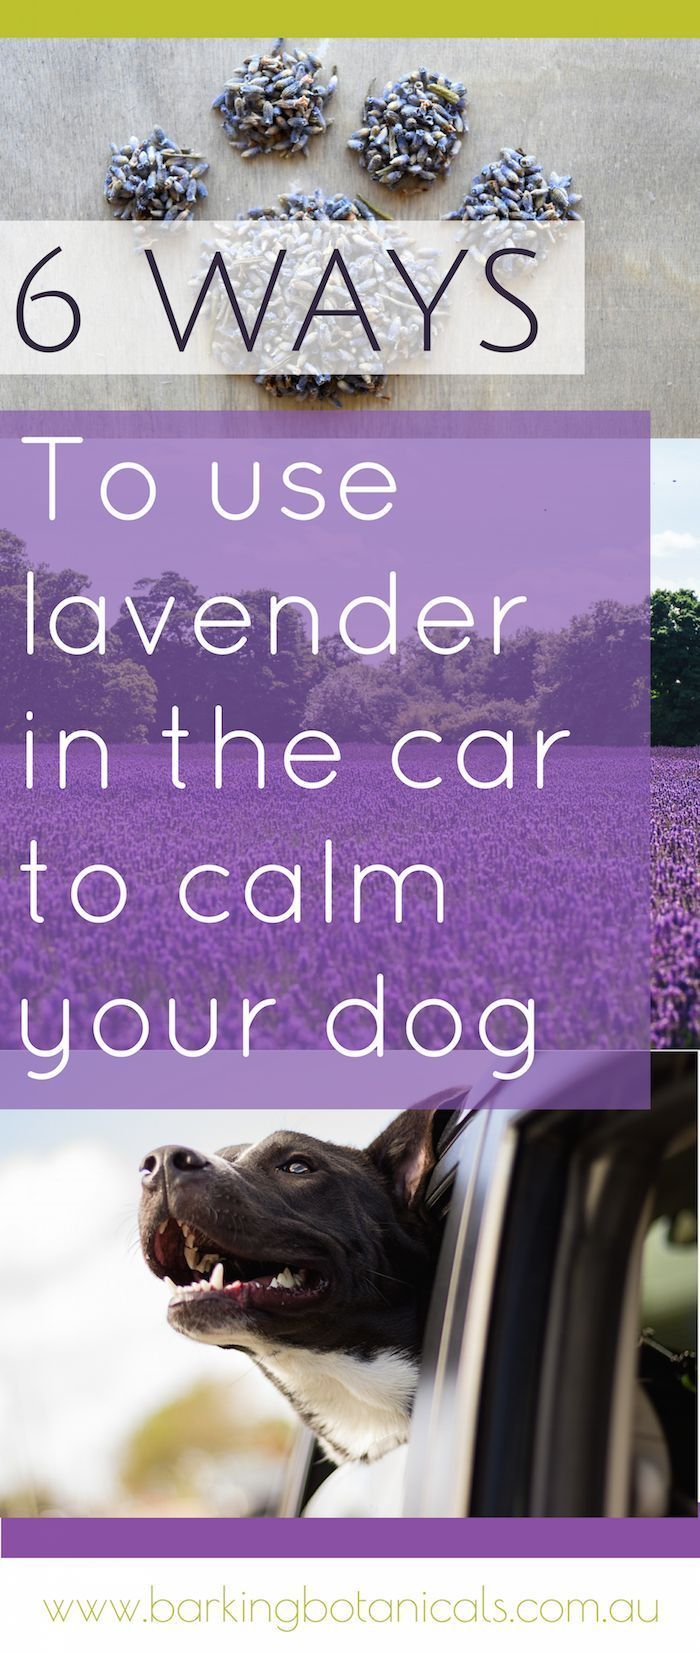 Canine herbal therapy - 6 Ways To Use Lavender In The Car To Calm Your Dog Herbal Remedieshealth